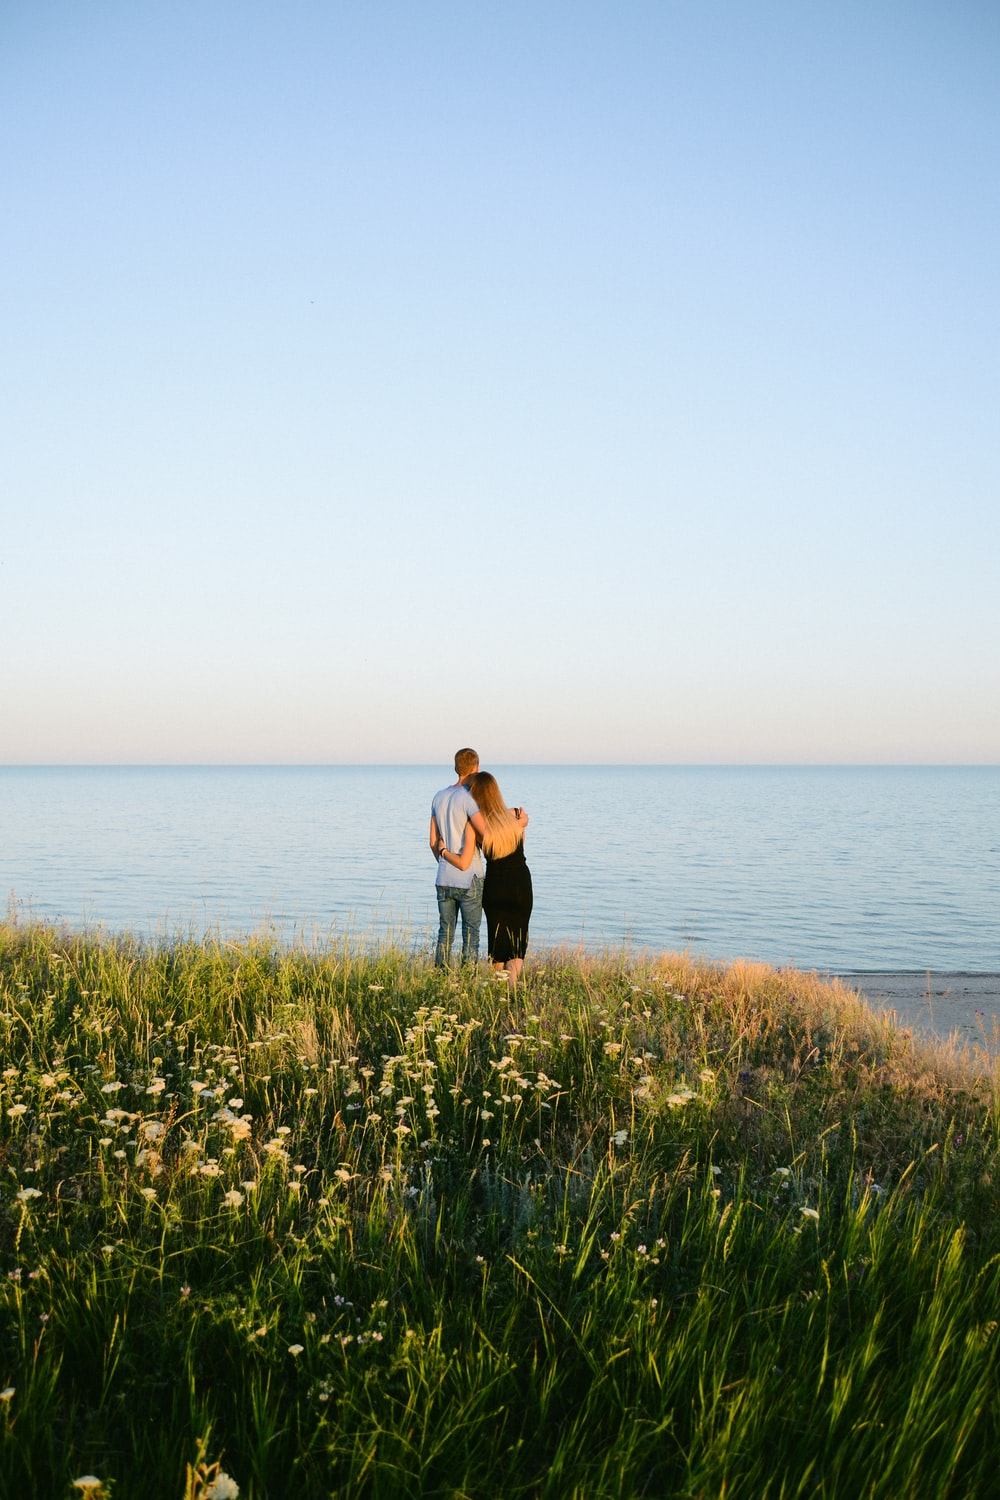 woman in black tank top and black pants standing on green grass field near body of near on near on